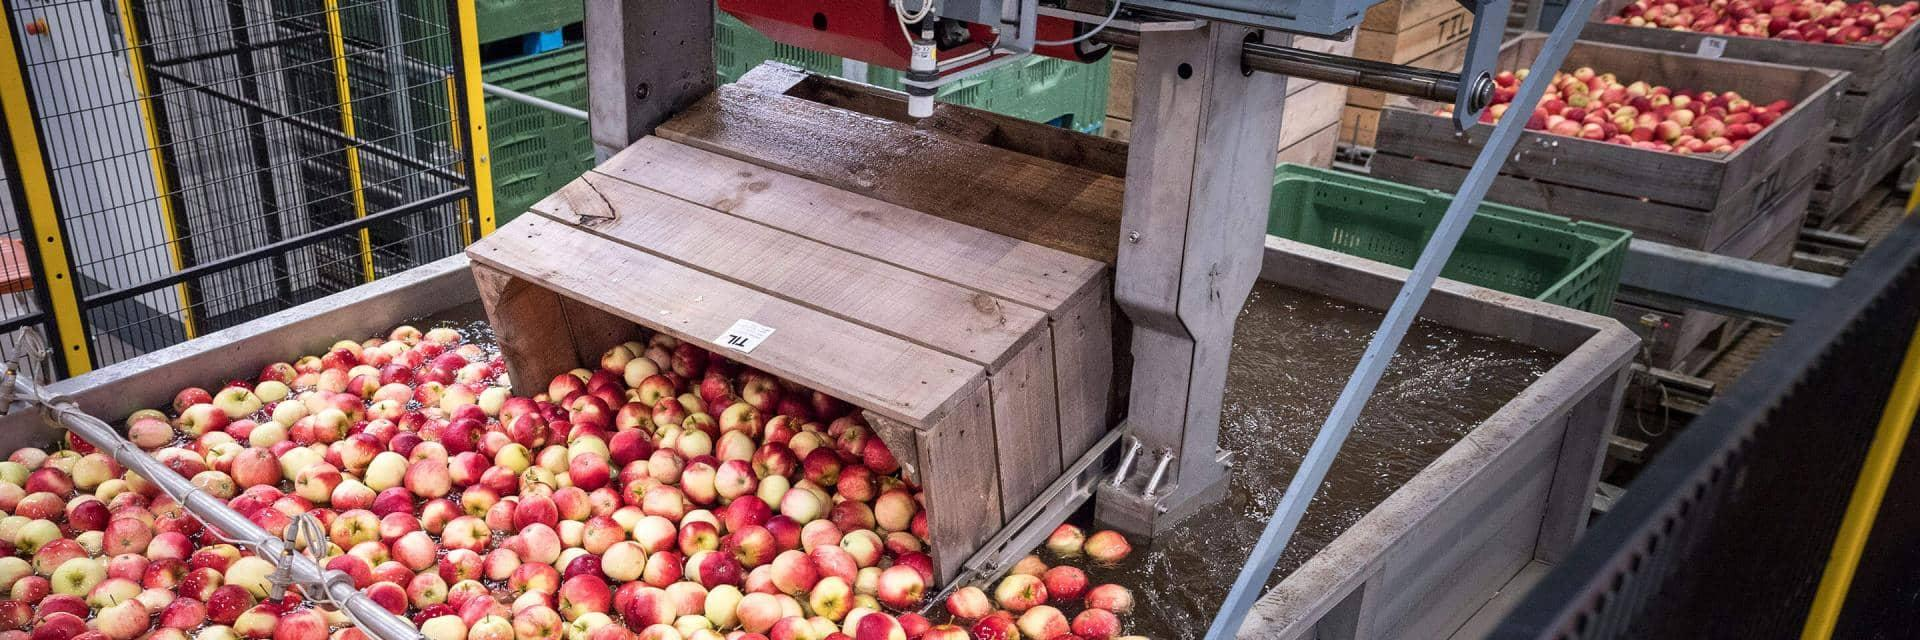 Red apples being processed in a factory production line